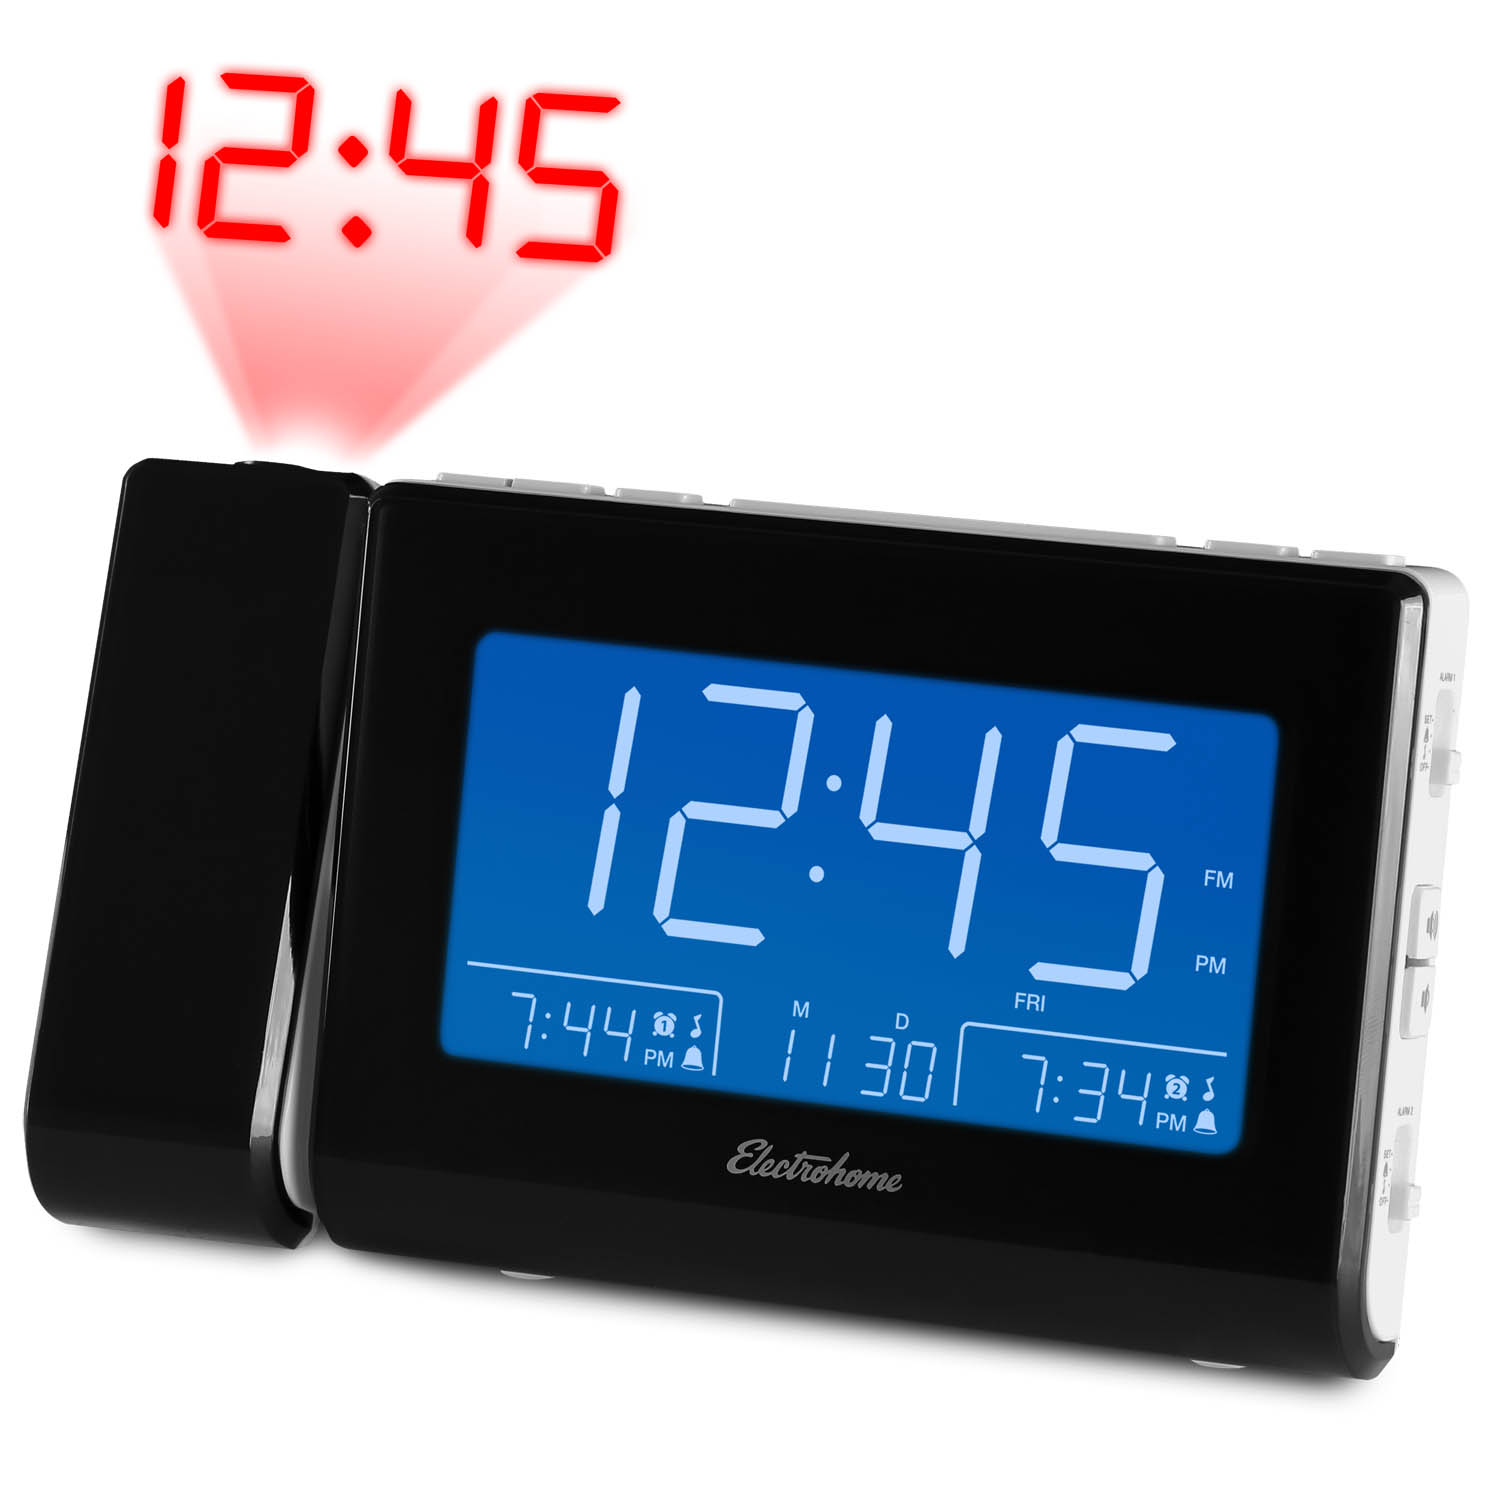 """Magnasonic Alarm Clock Radio with USB Charging for Smartphones & Tablets, Time Projection, Auto Dimming, Dual Gradual Wake Alarm, Battery Backup, Auto Time Set, Large 4.8"""" LED Display, AM/FM (CR64W)"""